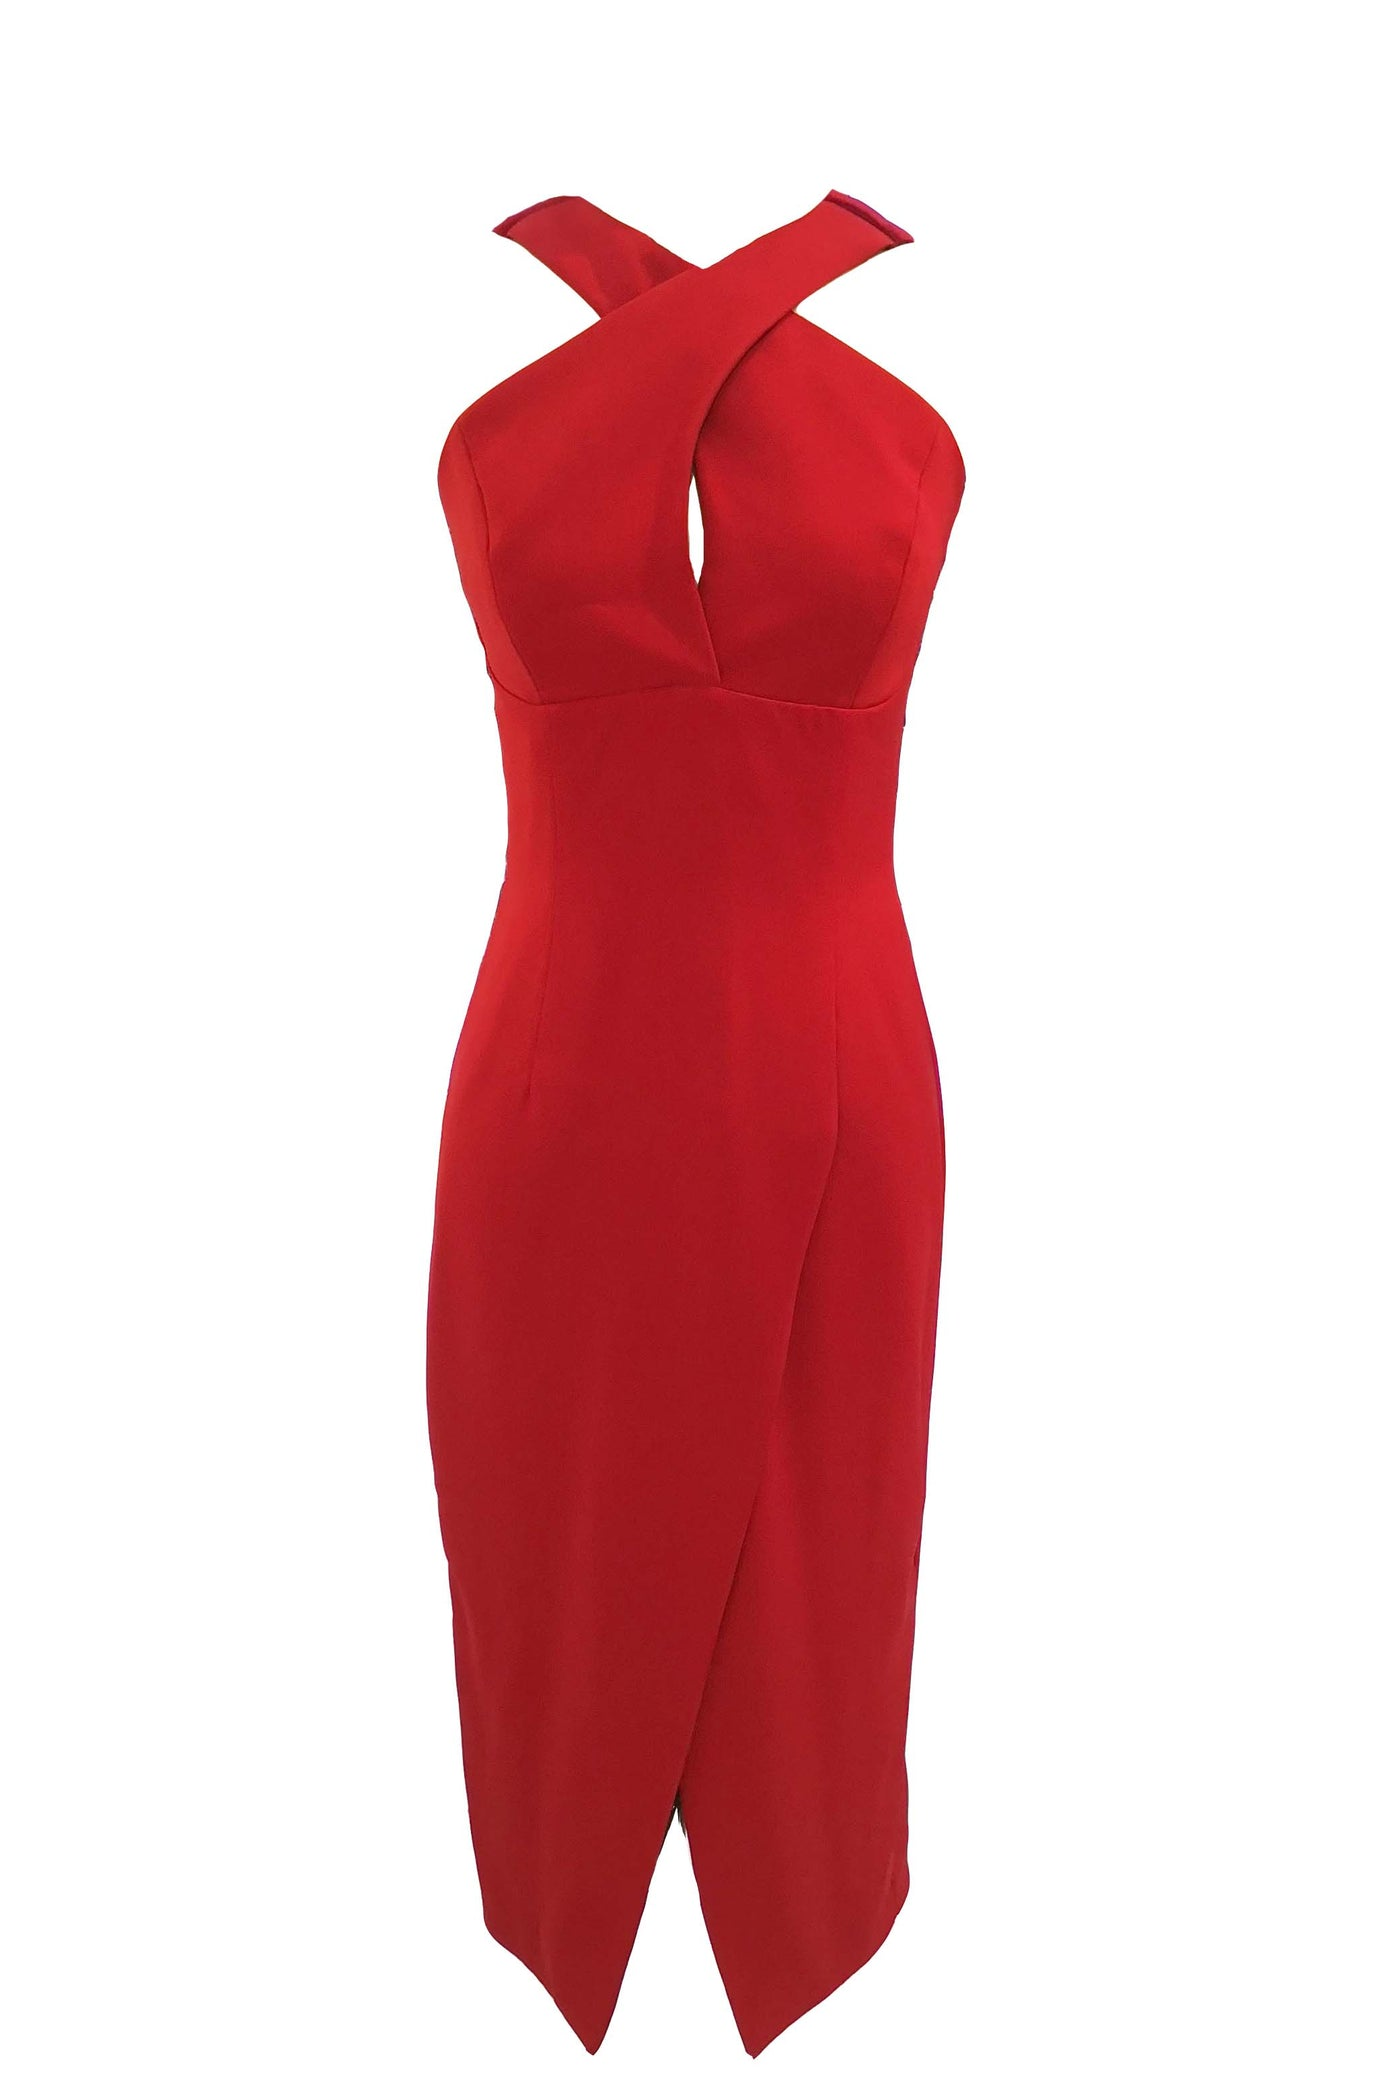 Rent: Nicola Finetti Red Halter Dress